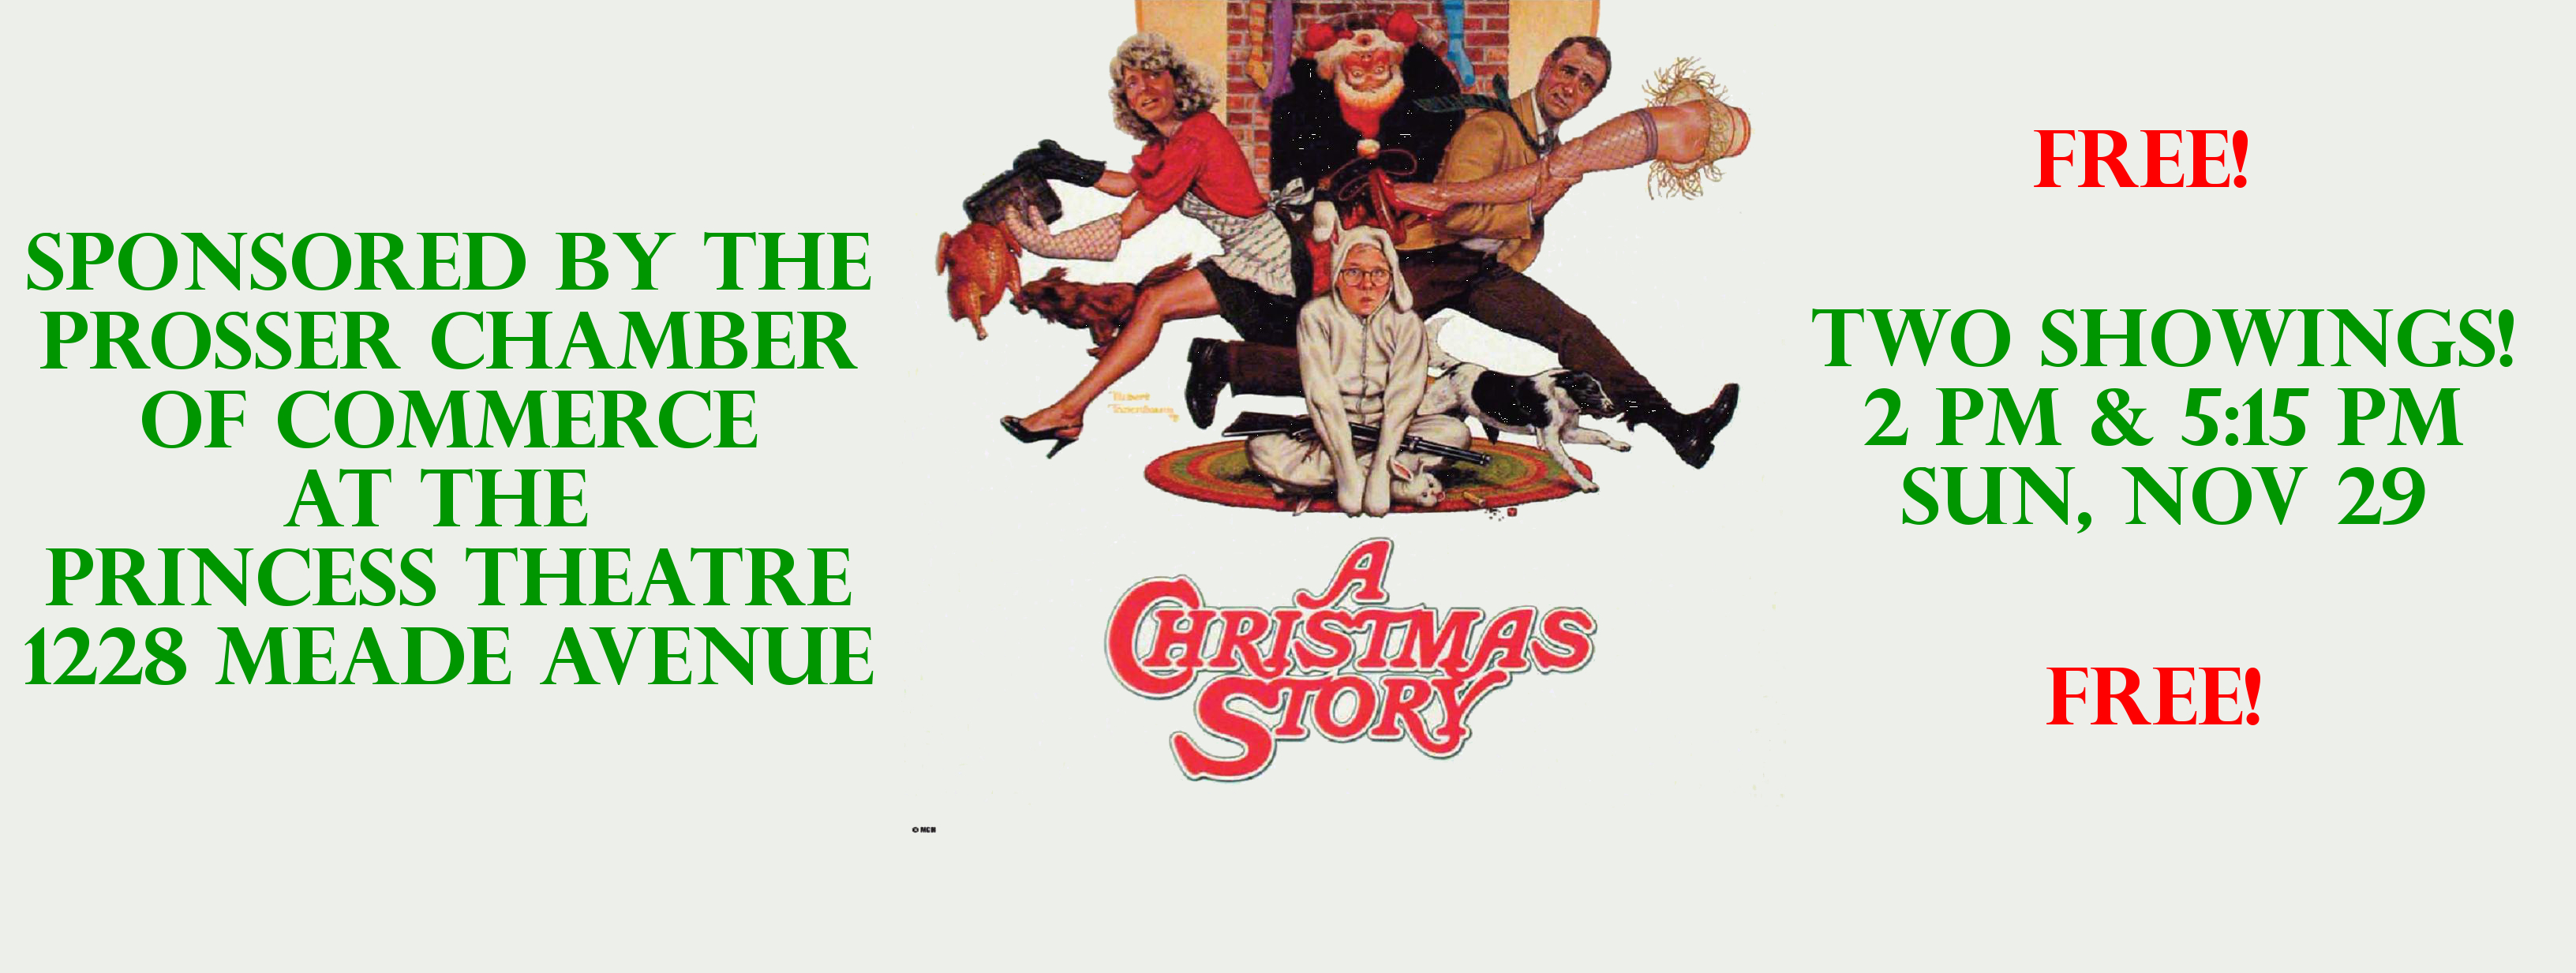 How the Grinch Stole Christmas FULL MOVlE, How the Grinch Stole Christmas  (2000) FULL MOVlE, Download How the Grinch Stole Christmas (2000) FULL  MOVlE, ...